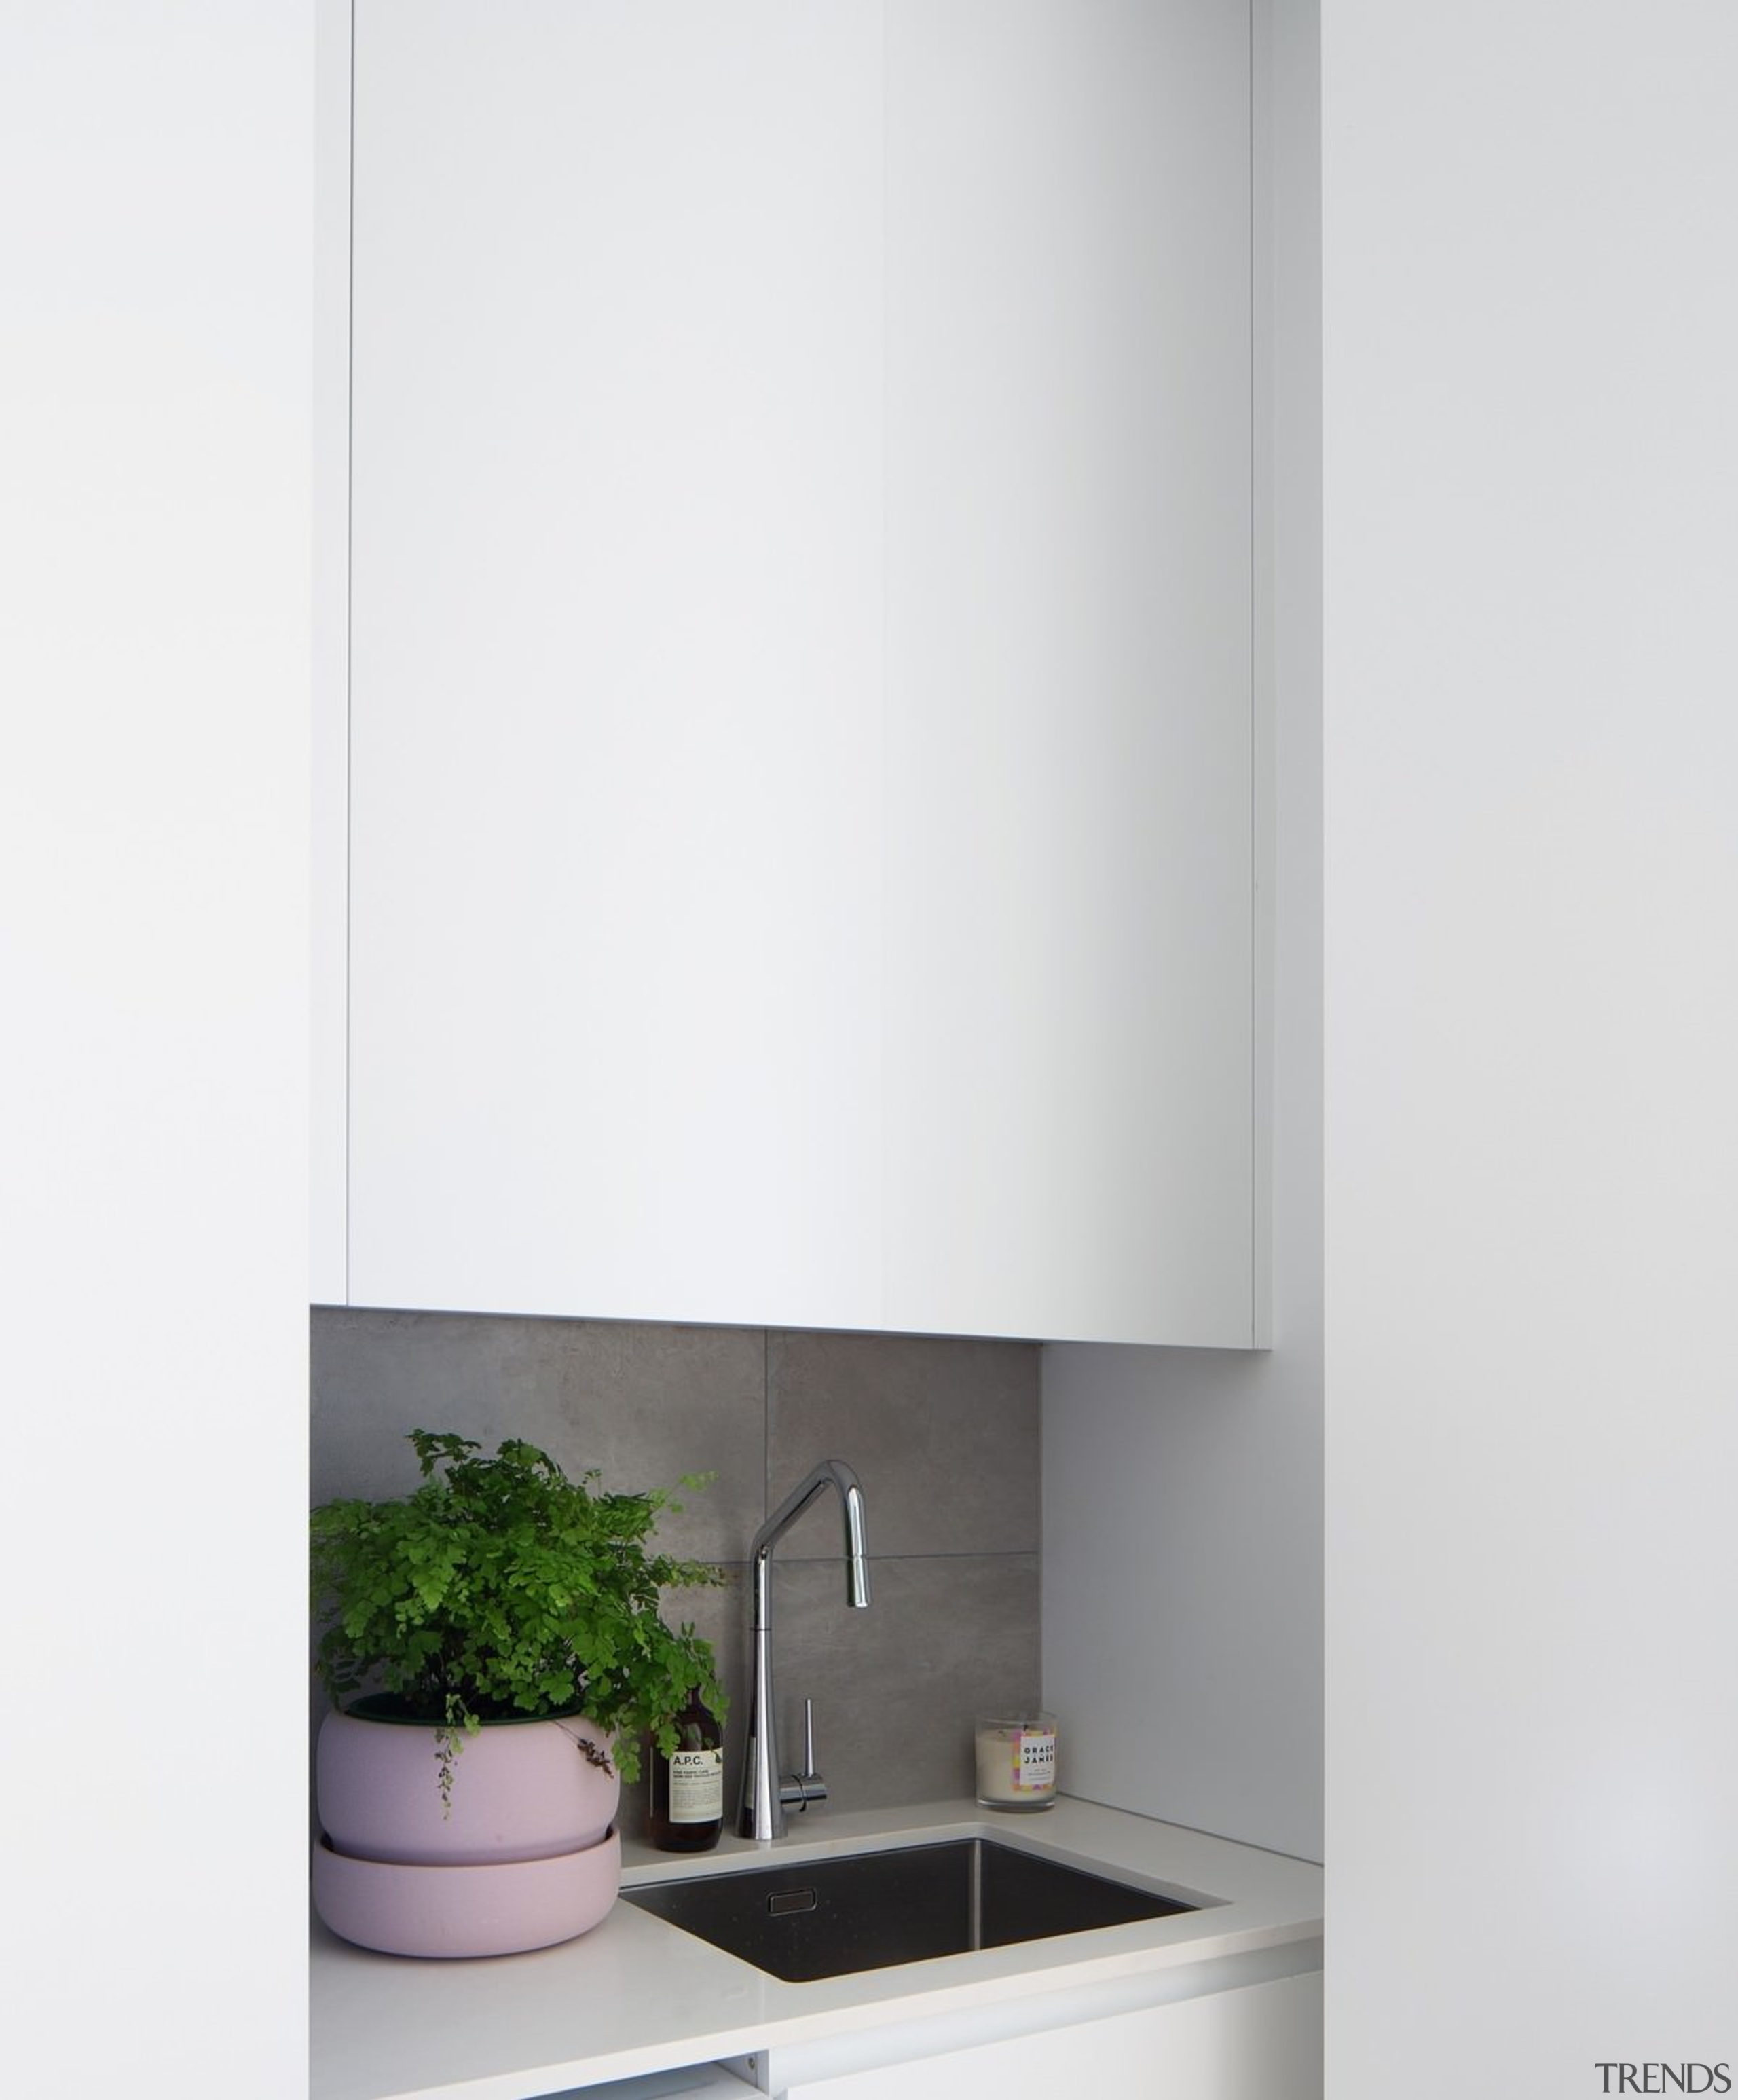 This sink nook is a clever use of bathroom accessory, bathroom cabinet, interior design, product, product design, tap, white